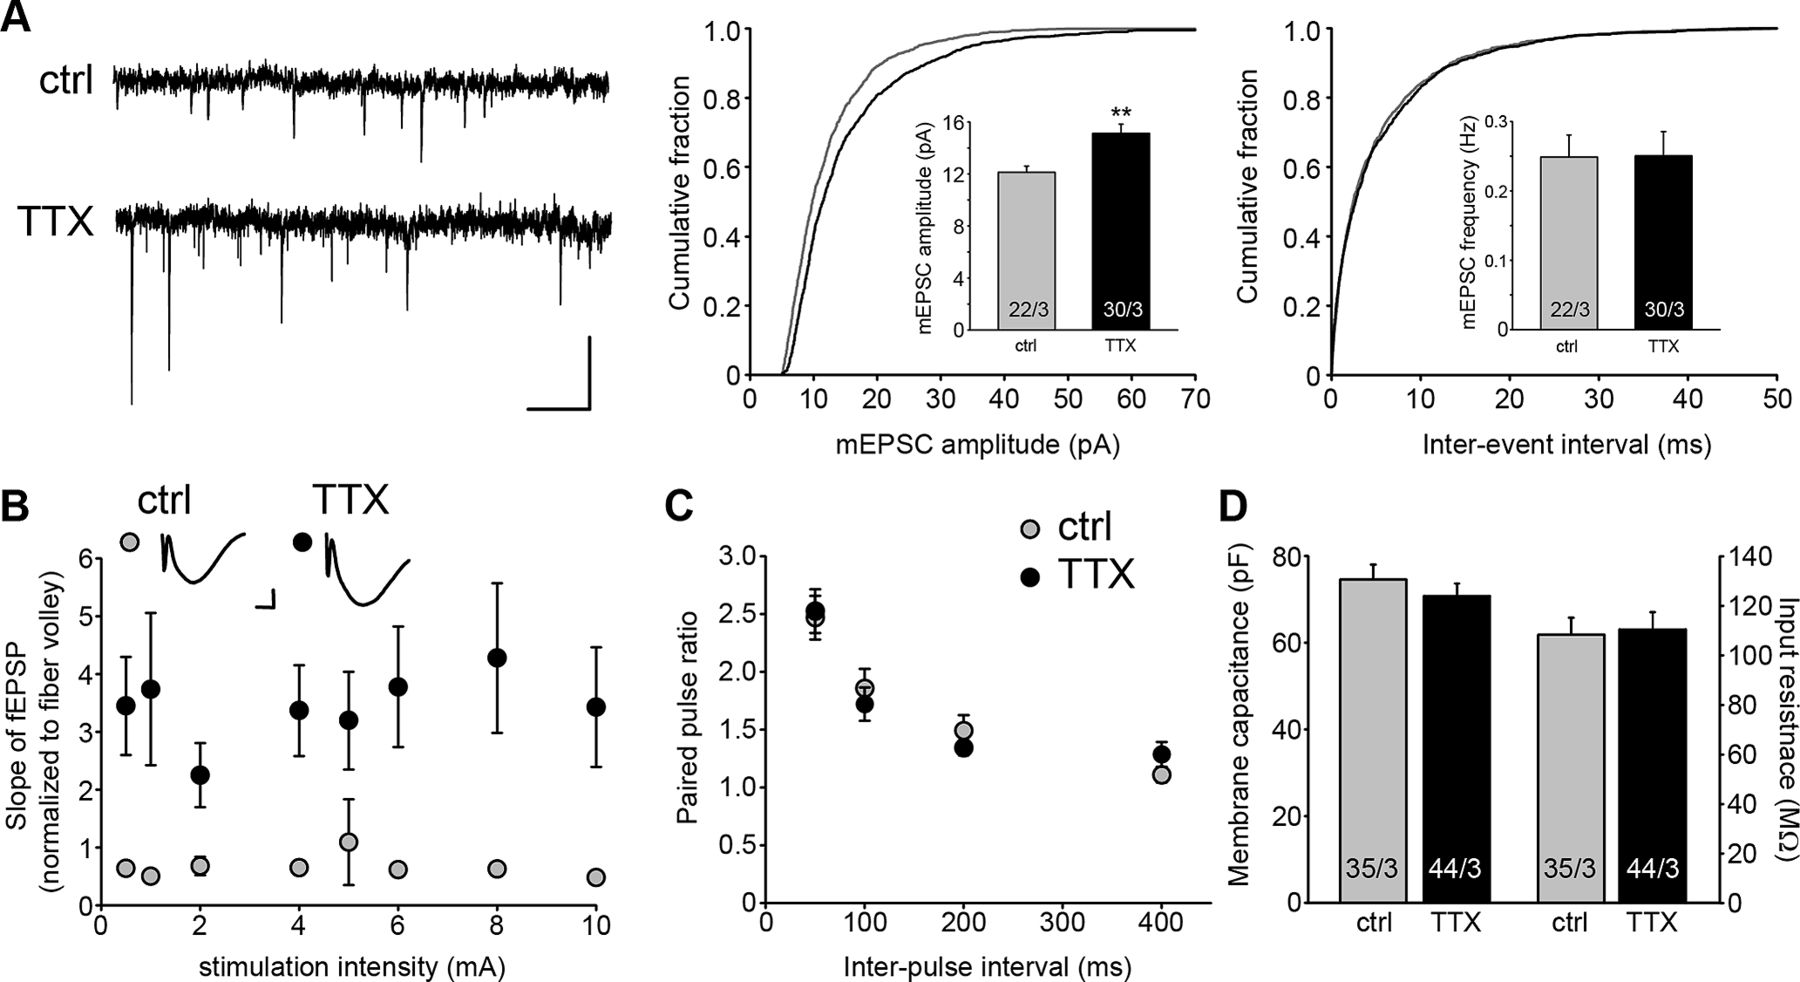 chronic inactivation of a neural circuit enhances ltp by inducing silent synapse formation